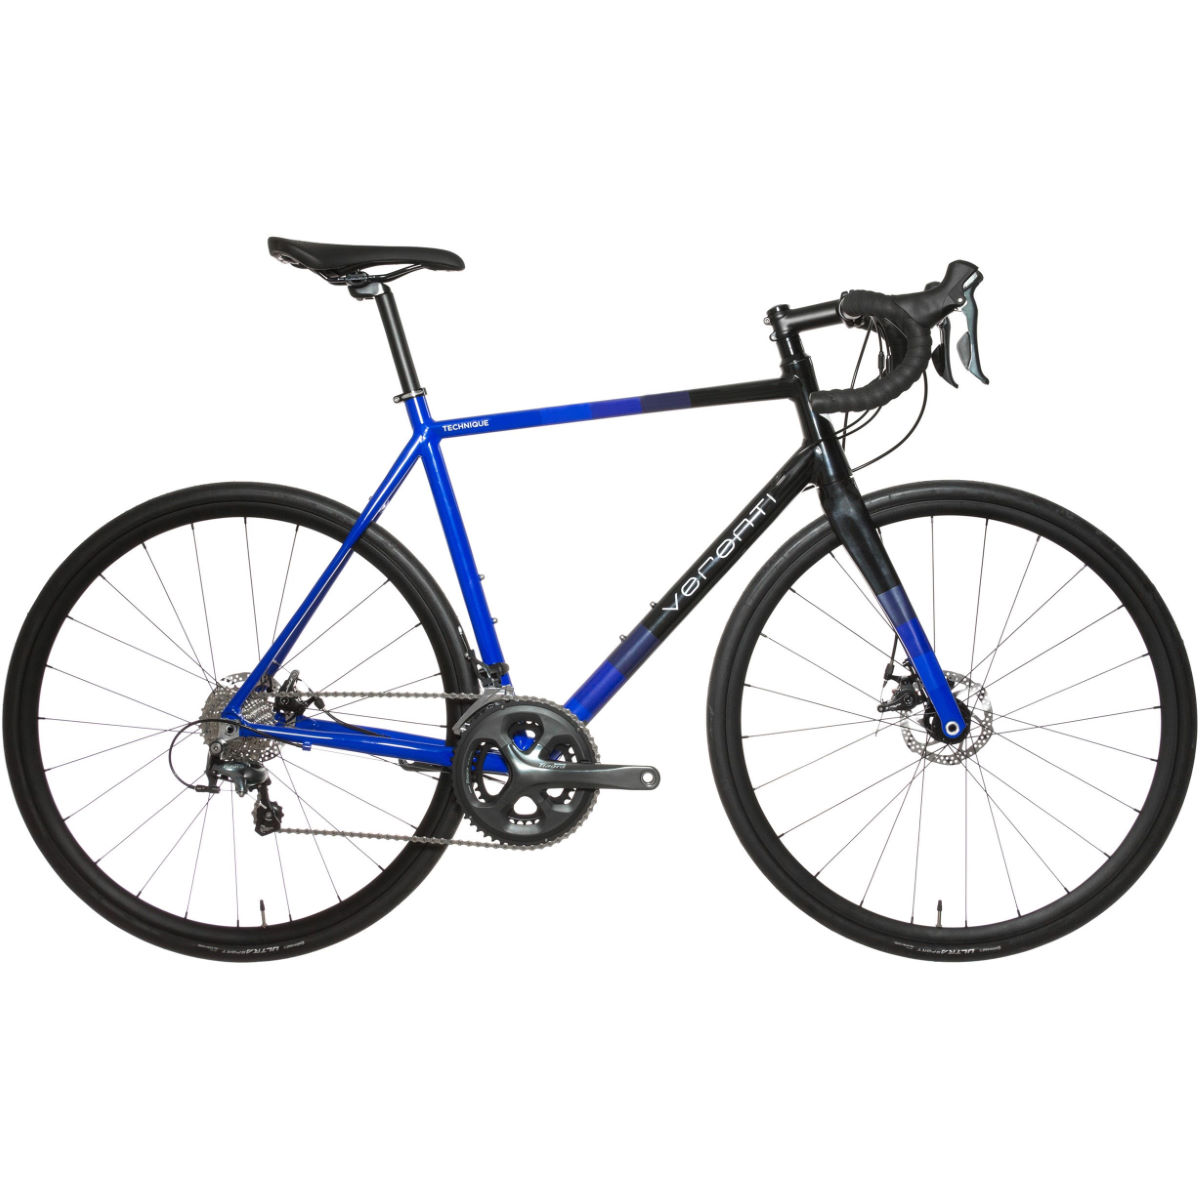 Vélo de route Verenti Technique Tiagra Disc (2017) - 50cm Stock Bike